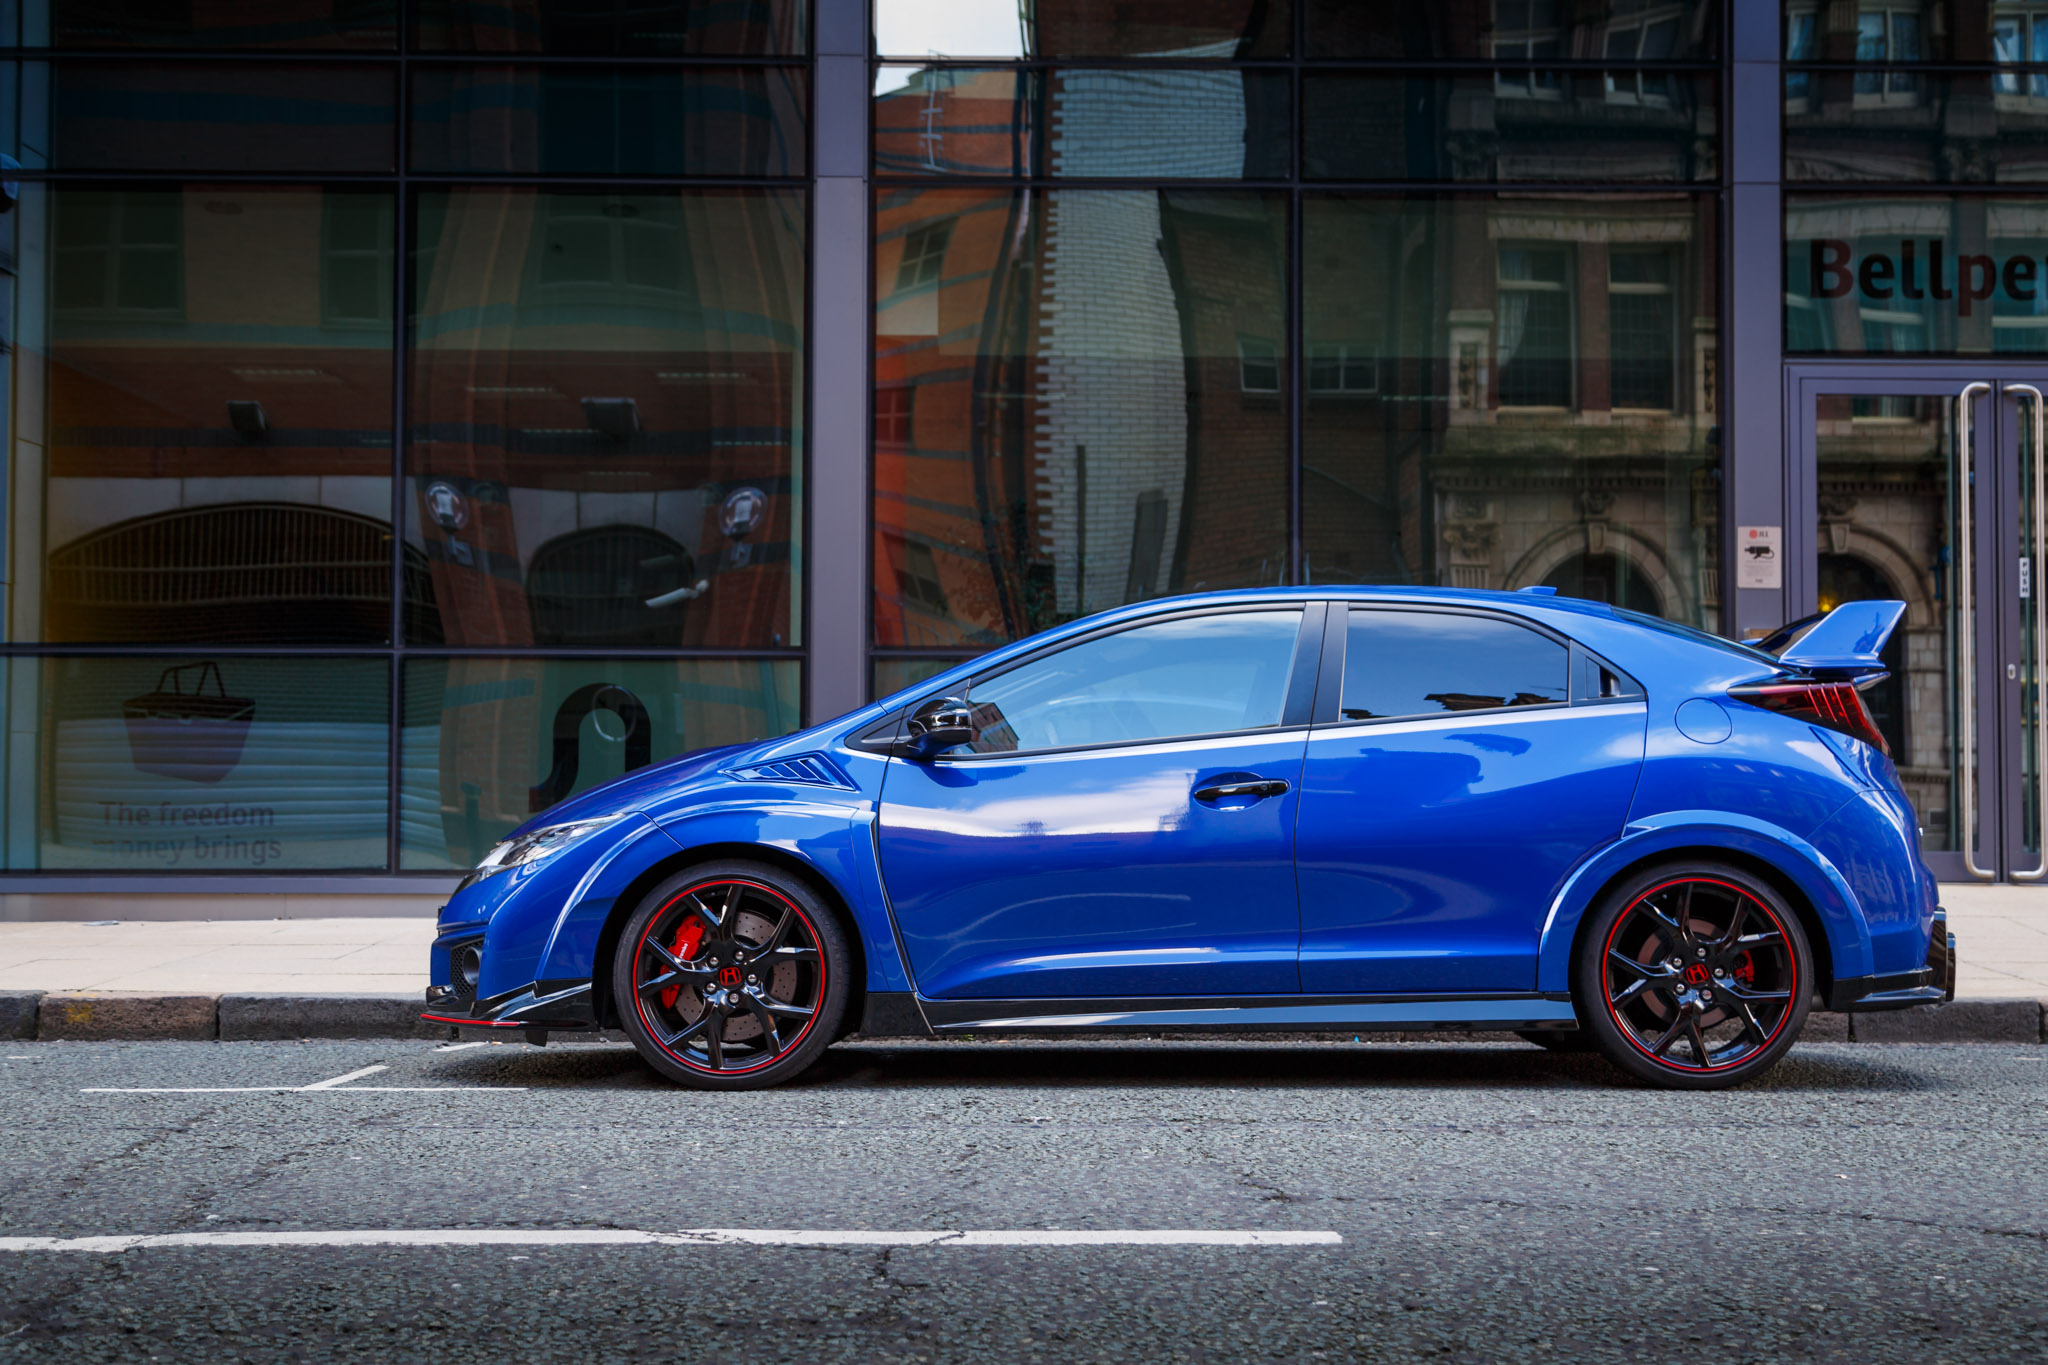 5 Reasons To Love The Honda Civic Type R Even More